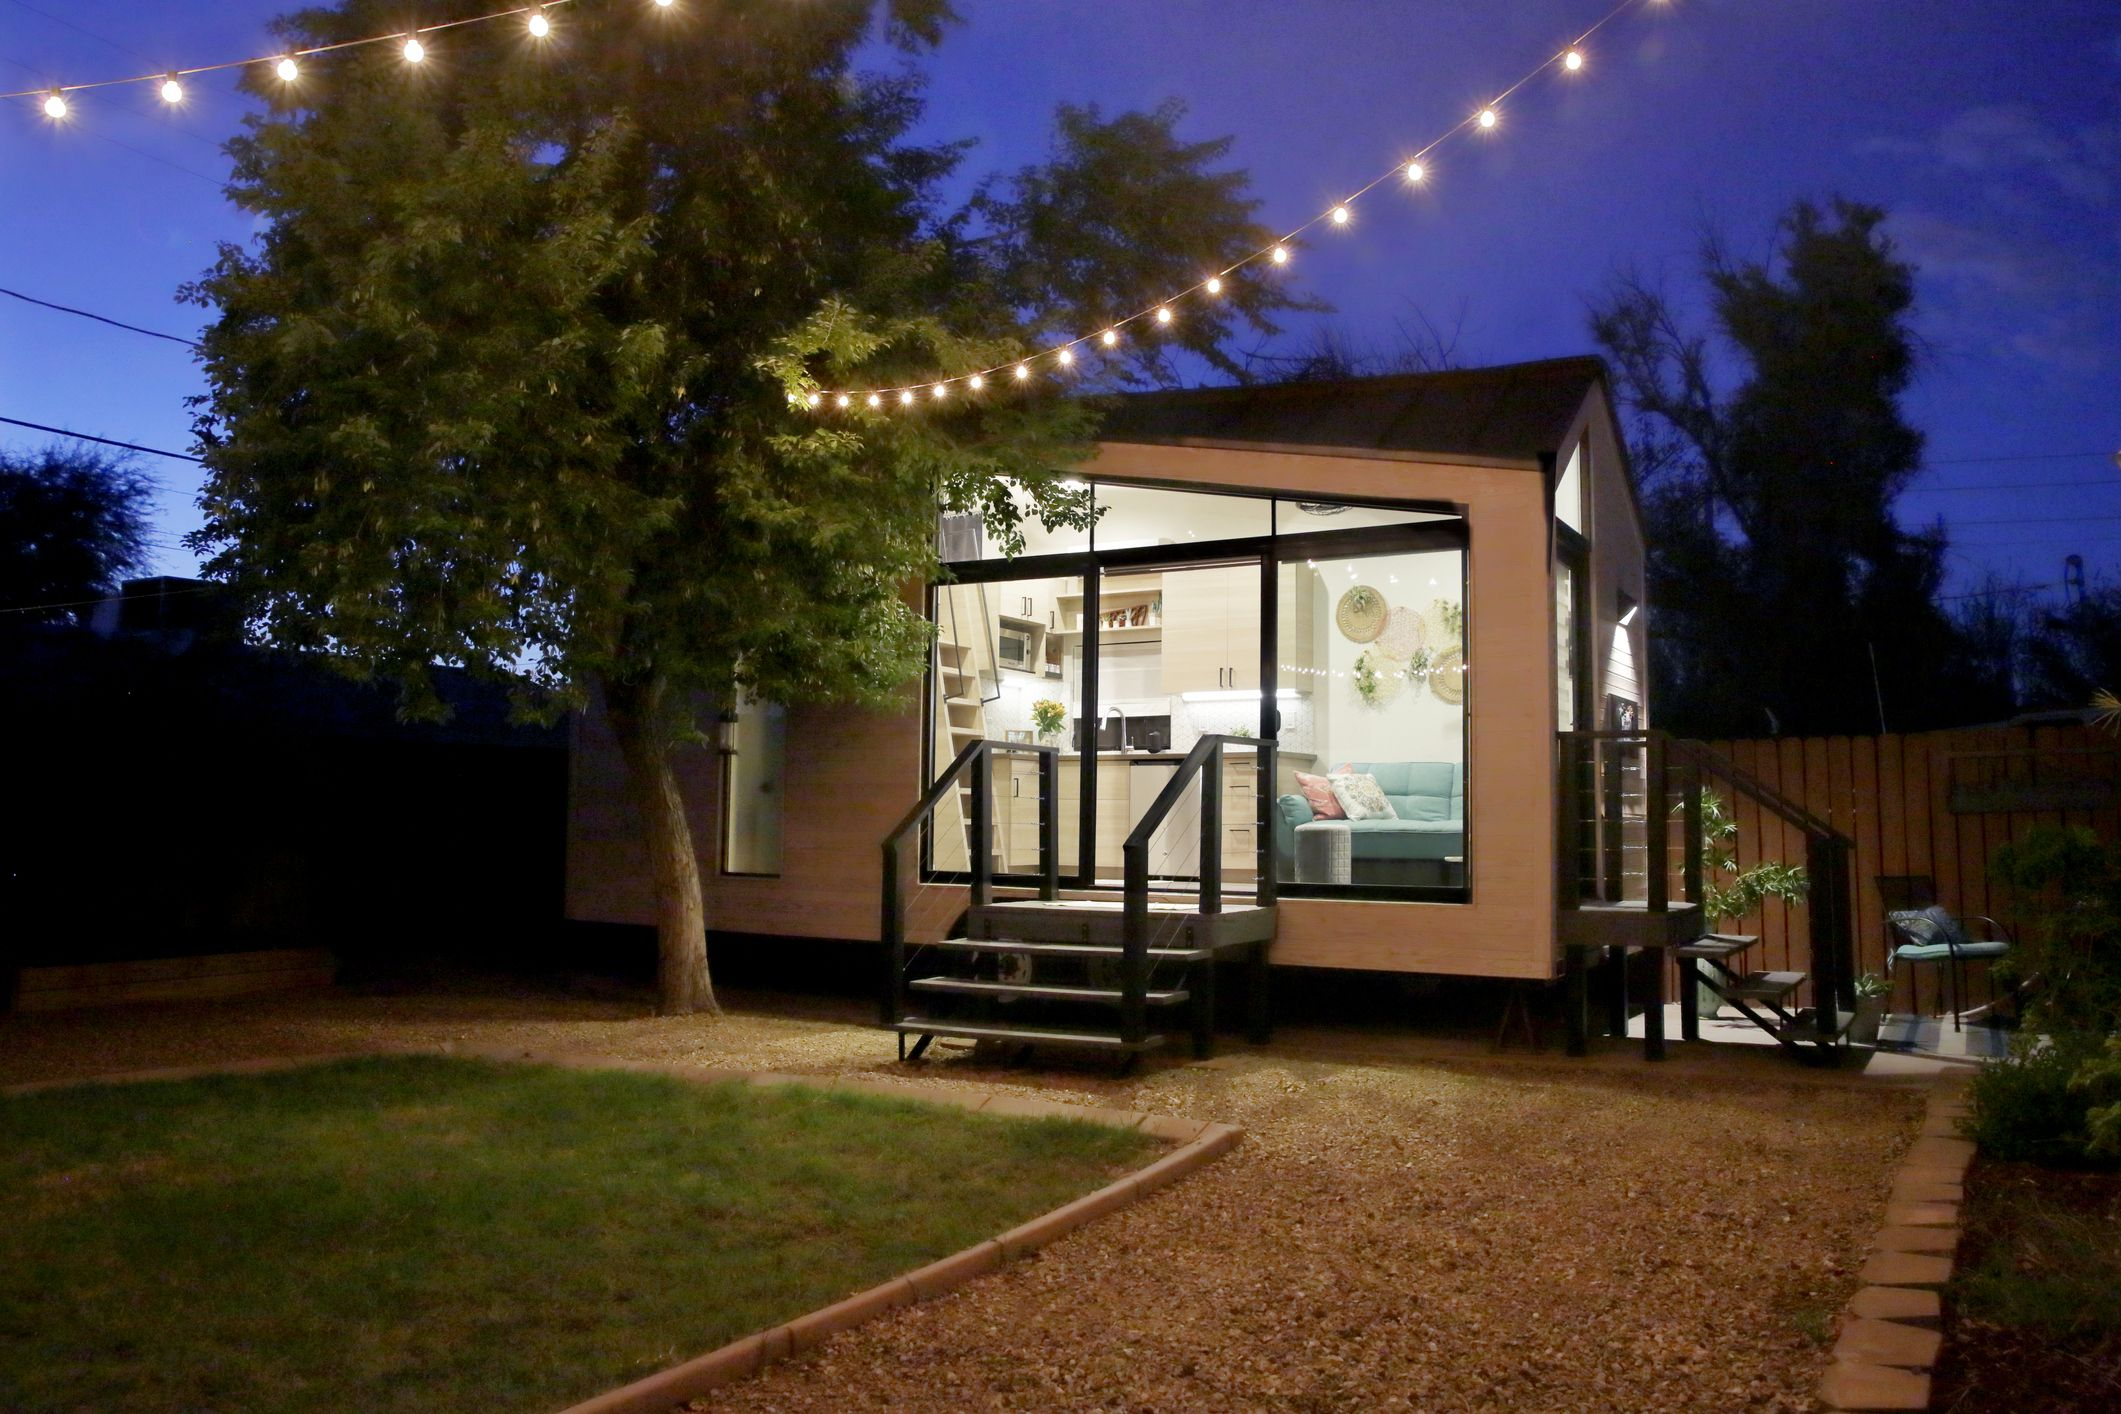 This Company Wants to Build an Entire Studio Apartment in Your Backyard For You to Rent Out